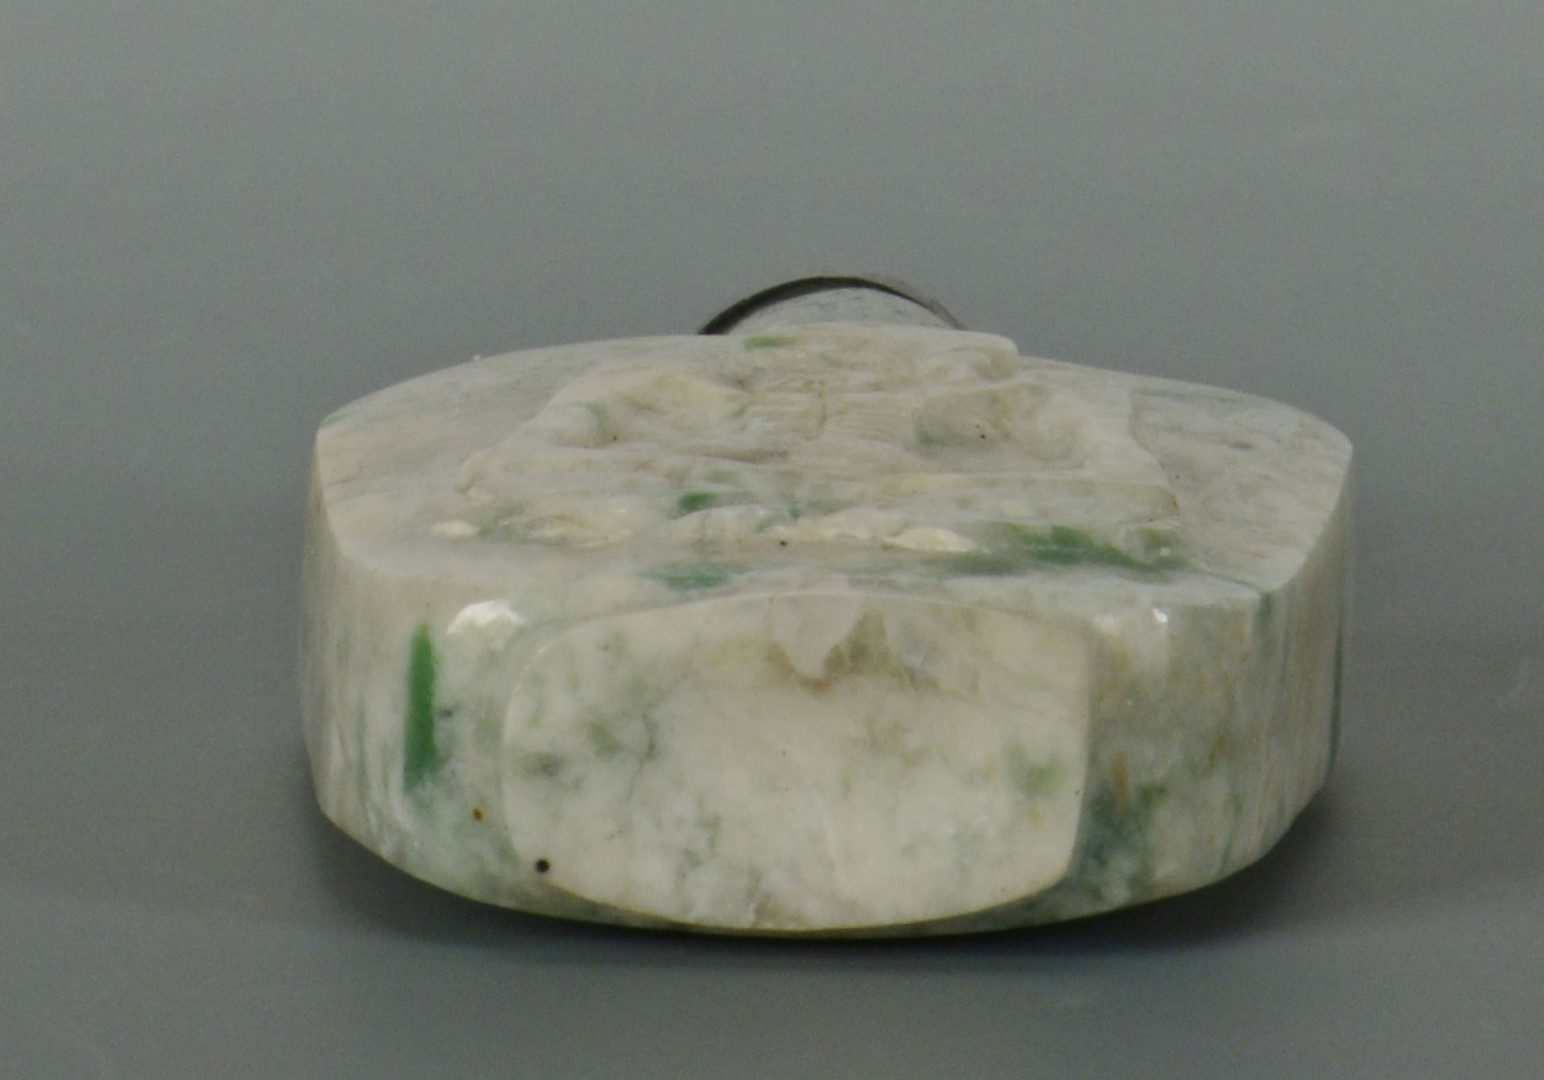 Lot 16: Chinese Carved Green and White Jade snuff bottle